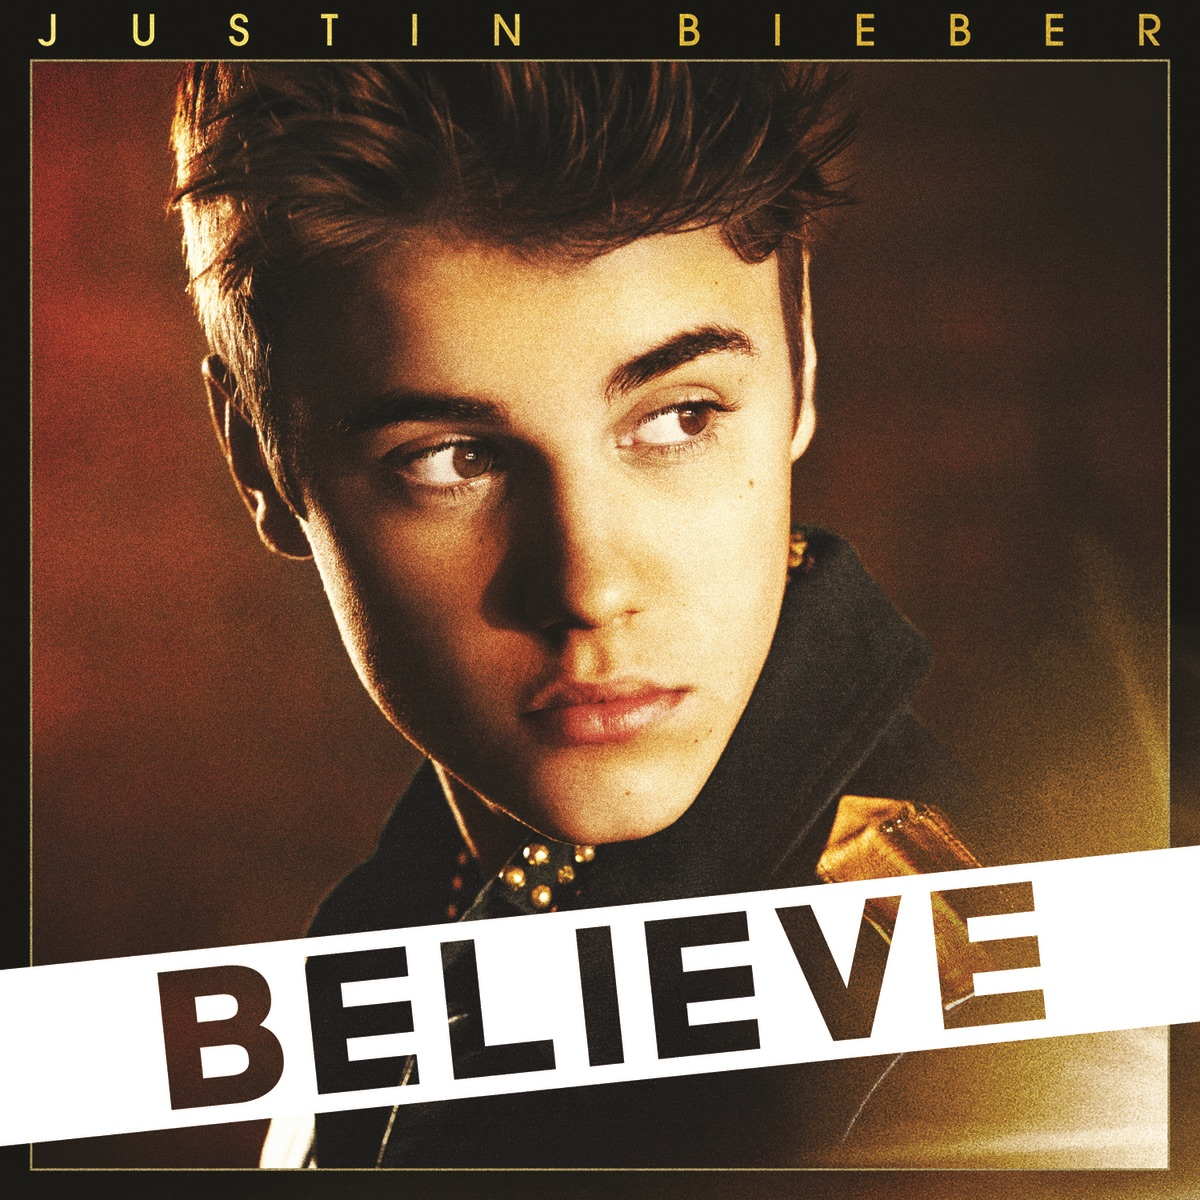 Justin Bieber - Believe (Deluxe Edition) Cover